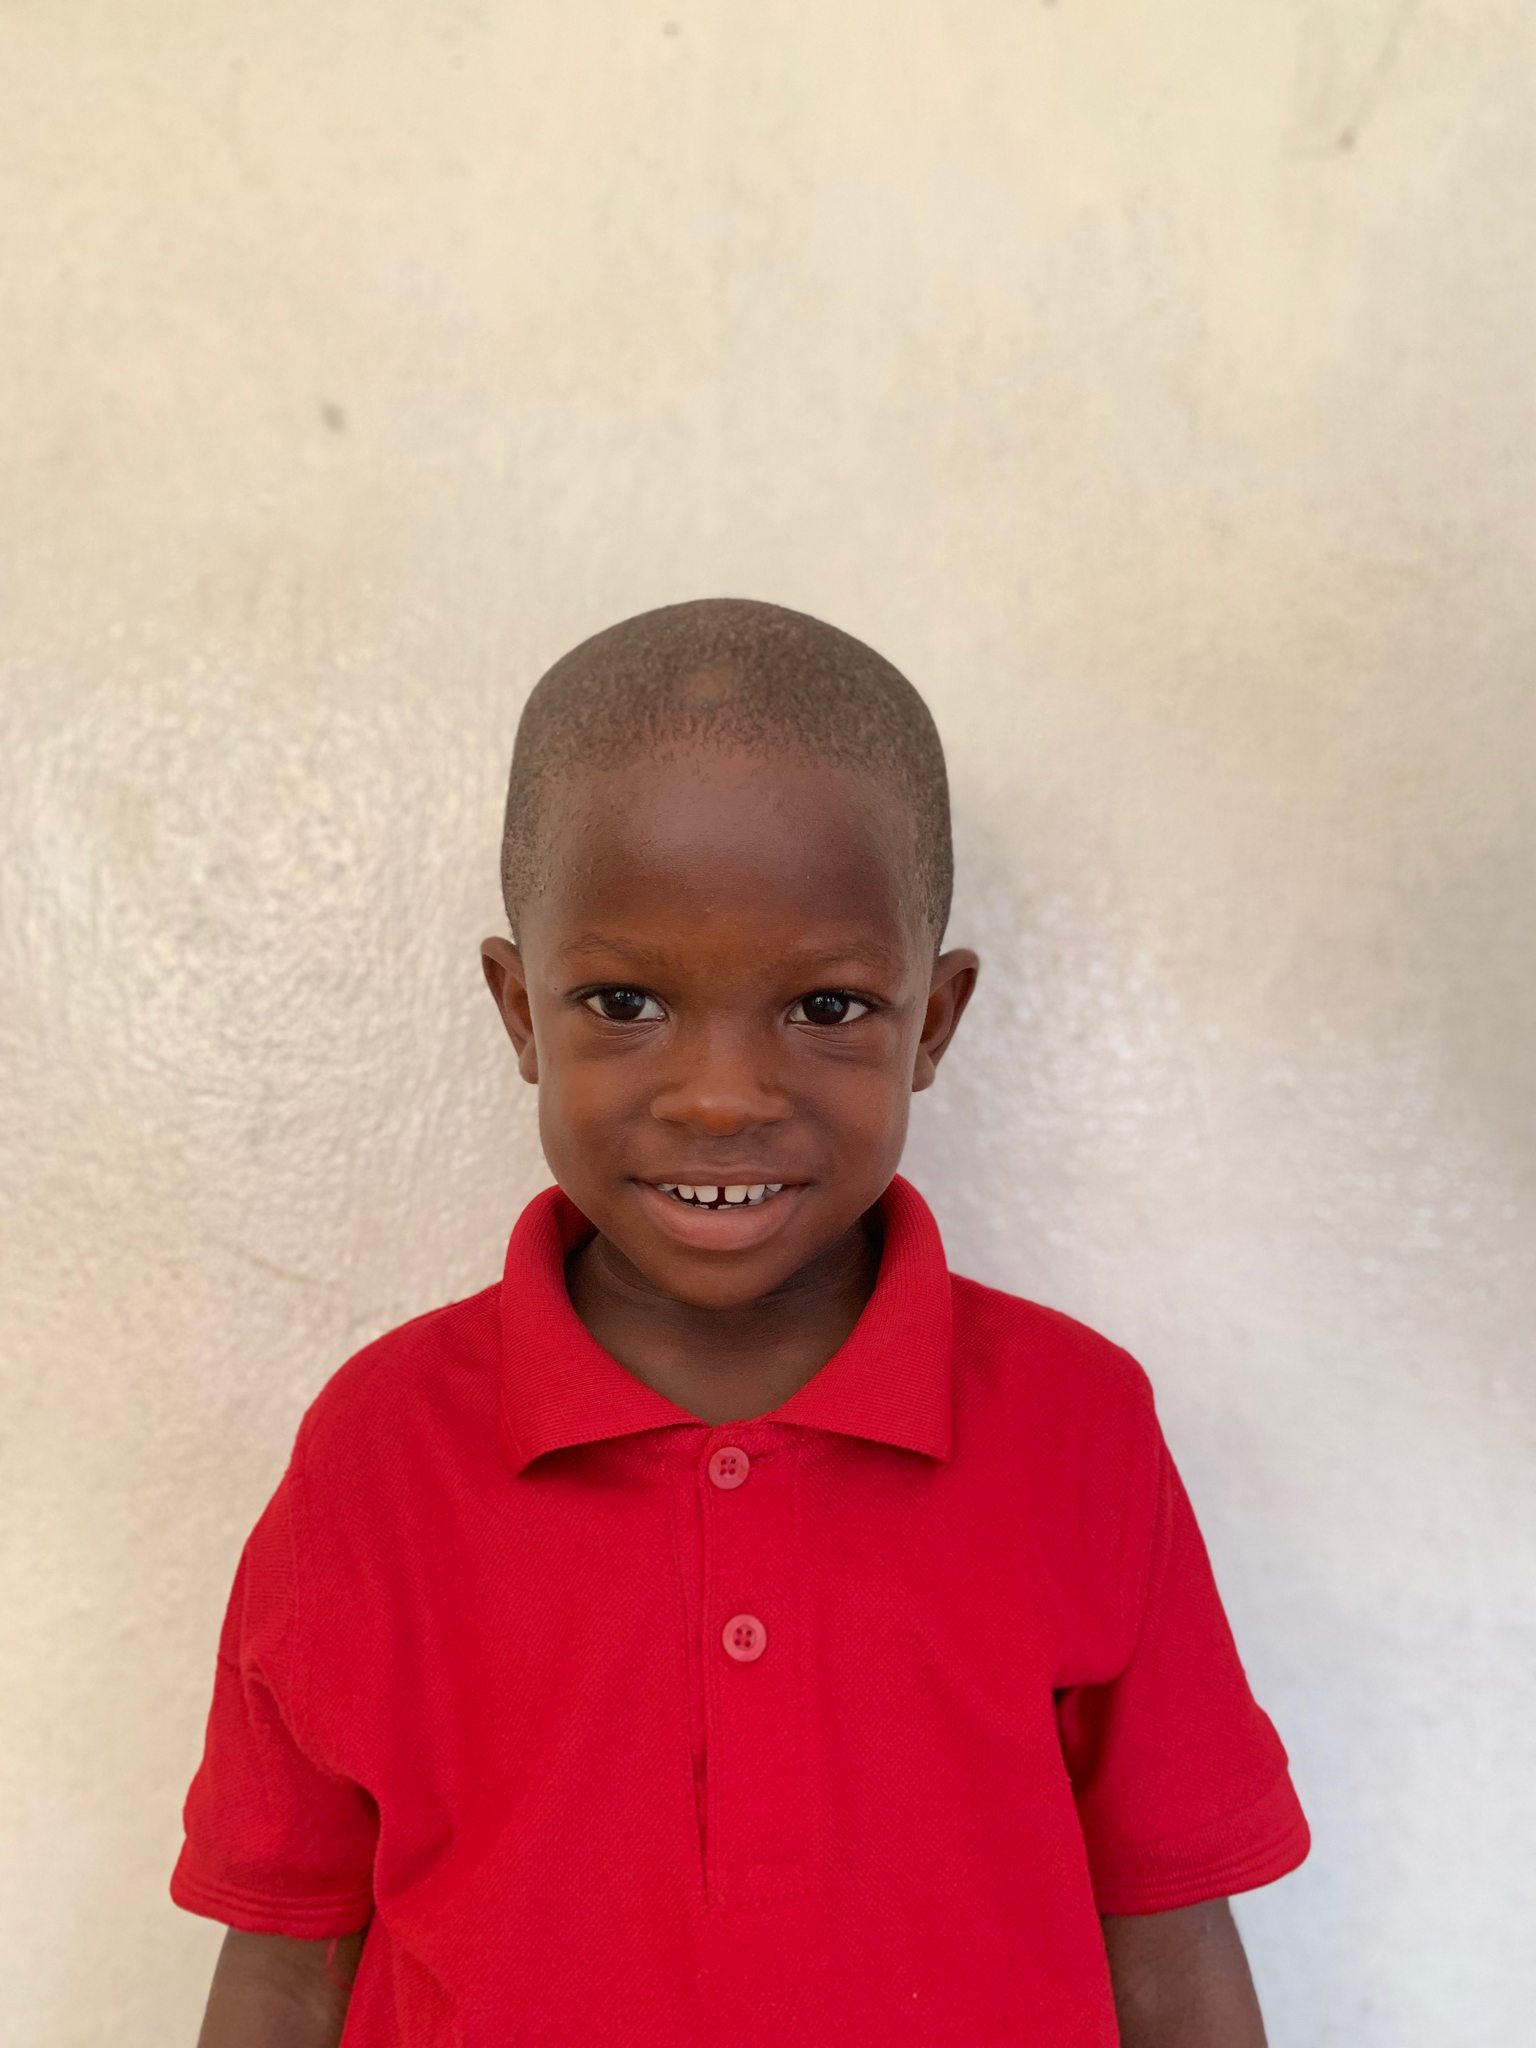 Hello, my name is Prince Sackor. - Prince is a 4-year-old boy.Prince lives with his mother, sister, and brother; and loves horses, soccer, and the color orange.